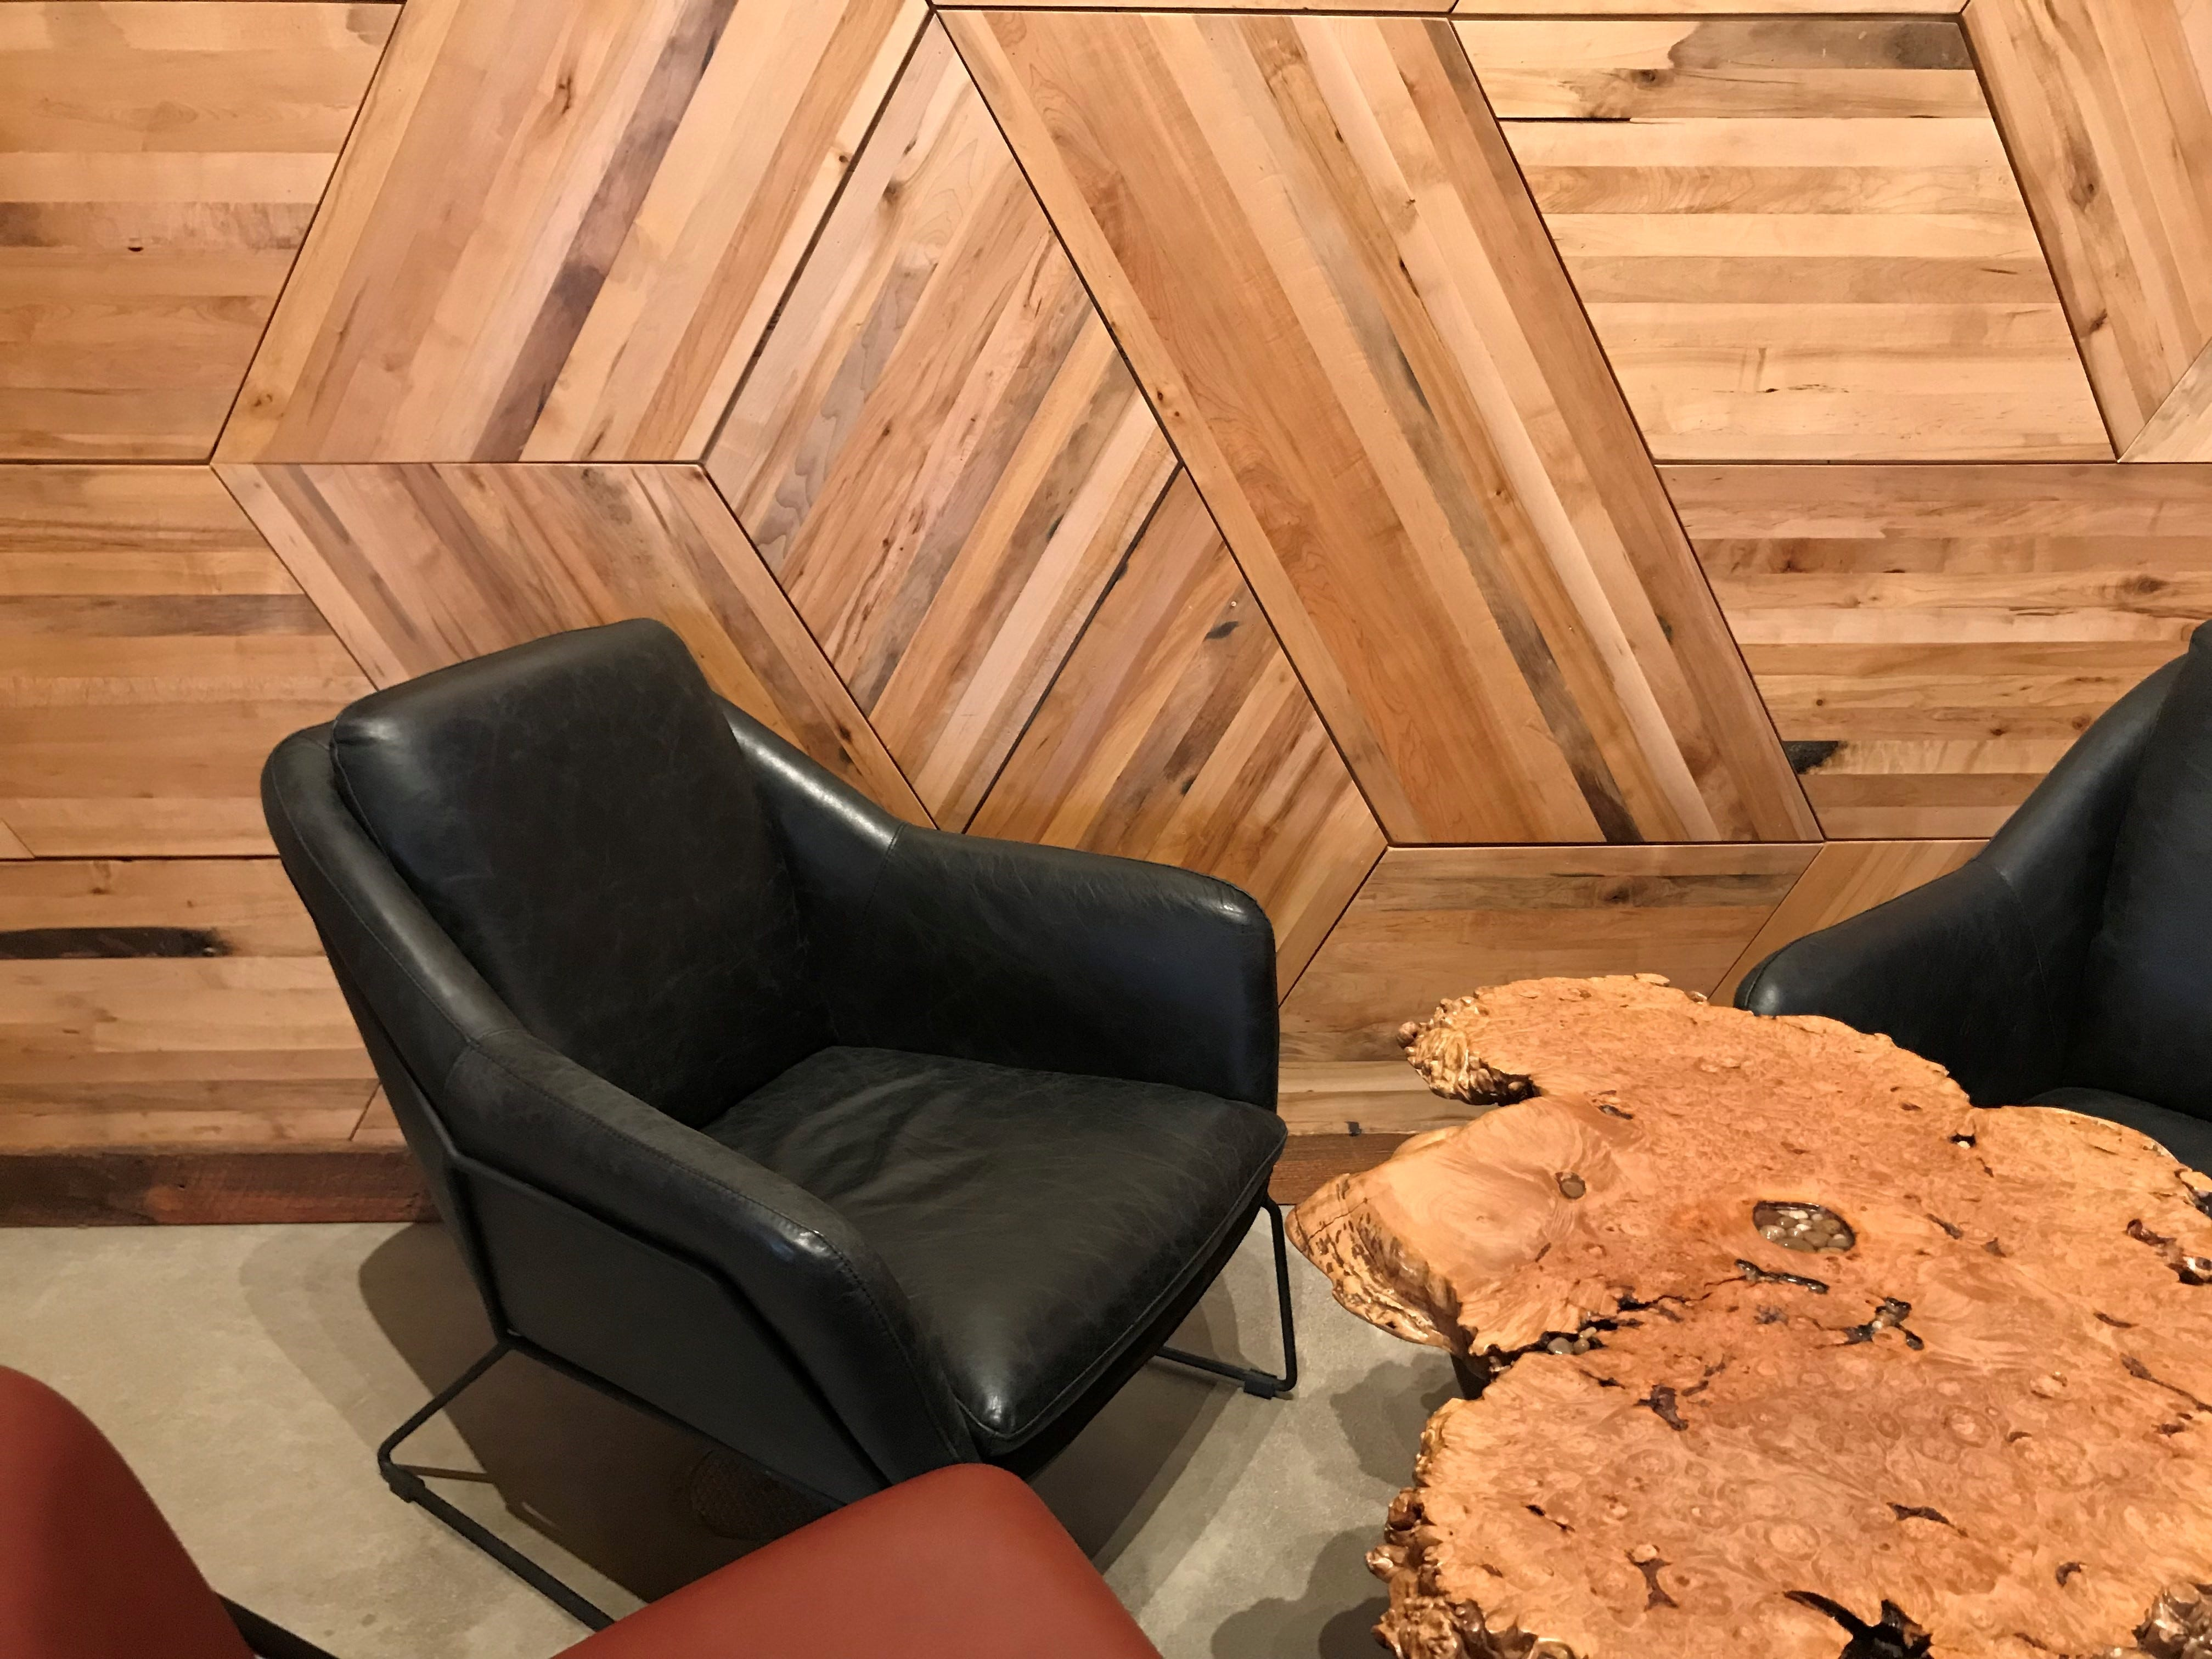 The wood paneling on the wall at Mosinee Brewing Company is reclaimed from the historic building's past as a general store and I.G.A. store, or independent grocers' association.